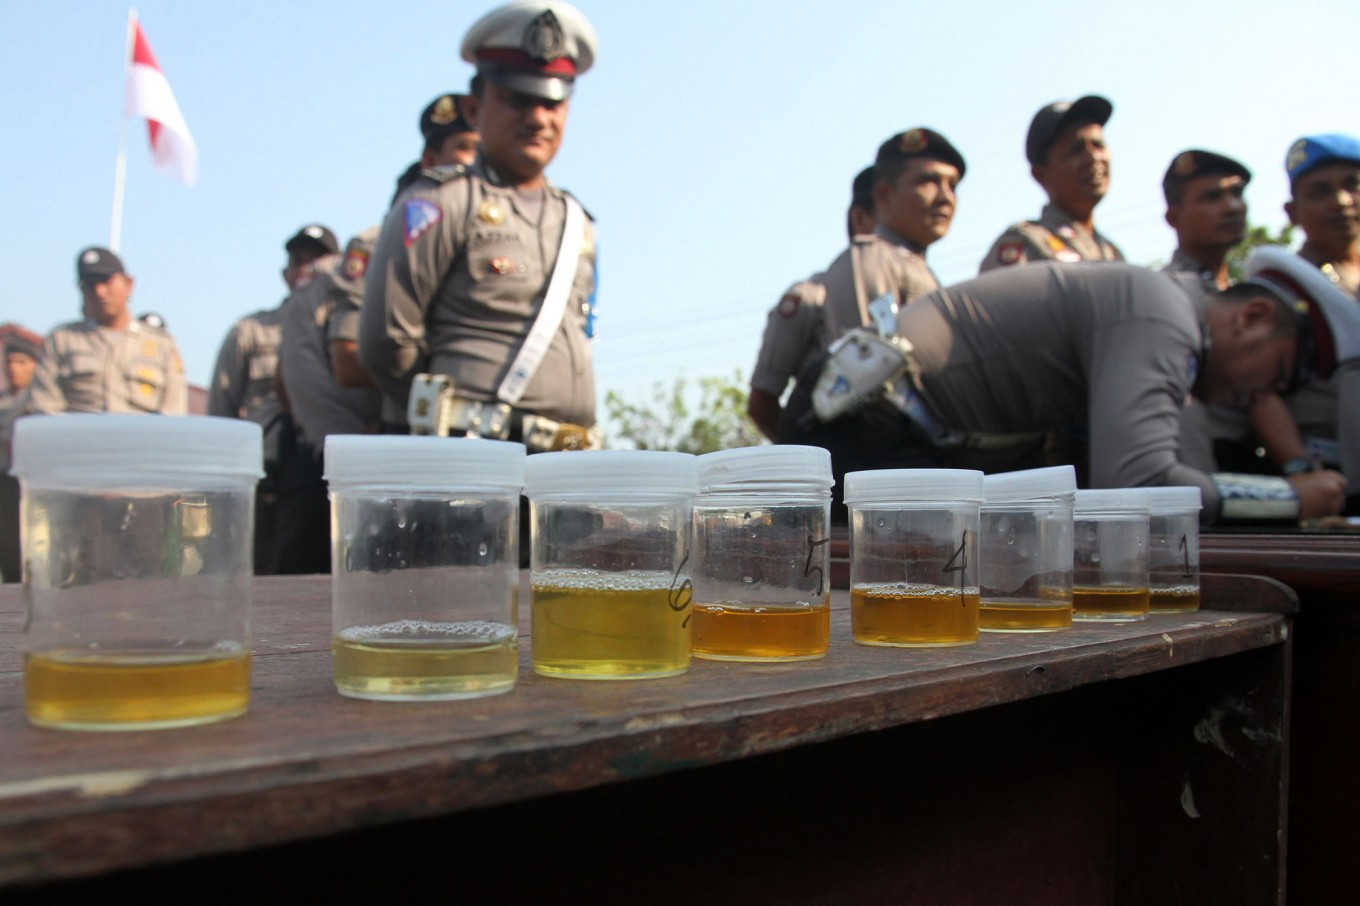 Tested positive for narcotics, Indian pilot arrested in West Nusa Tenggara